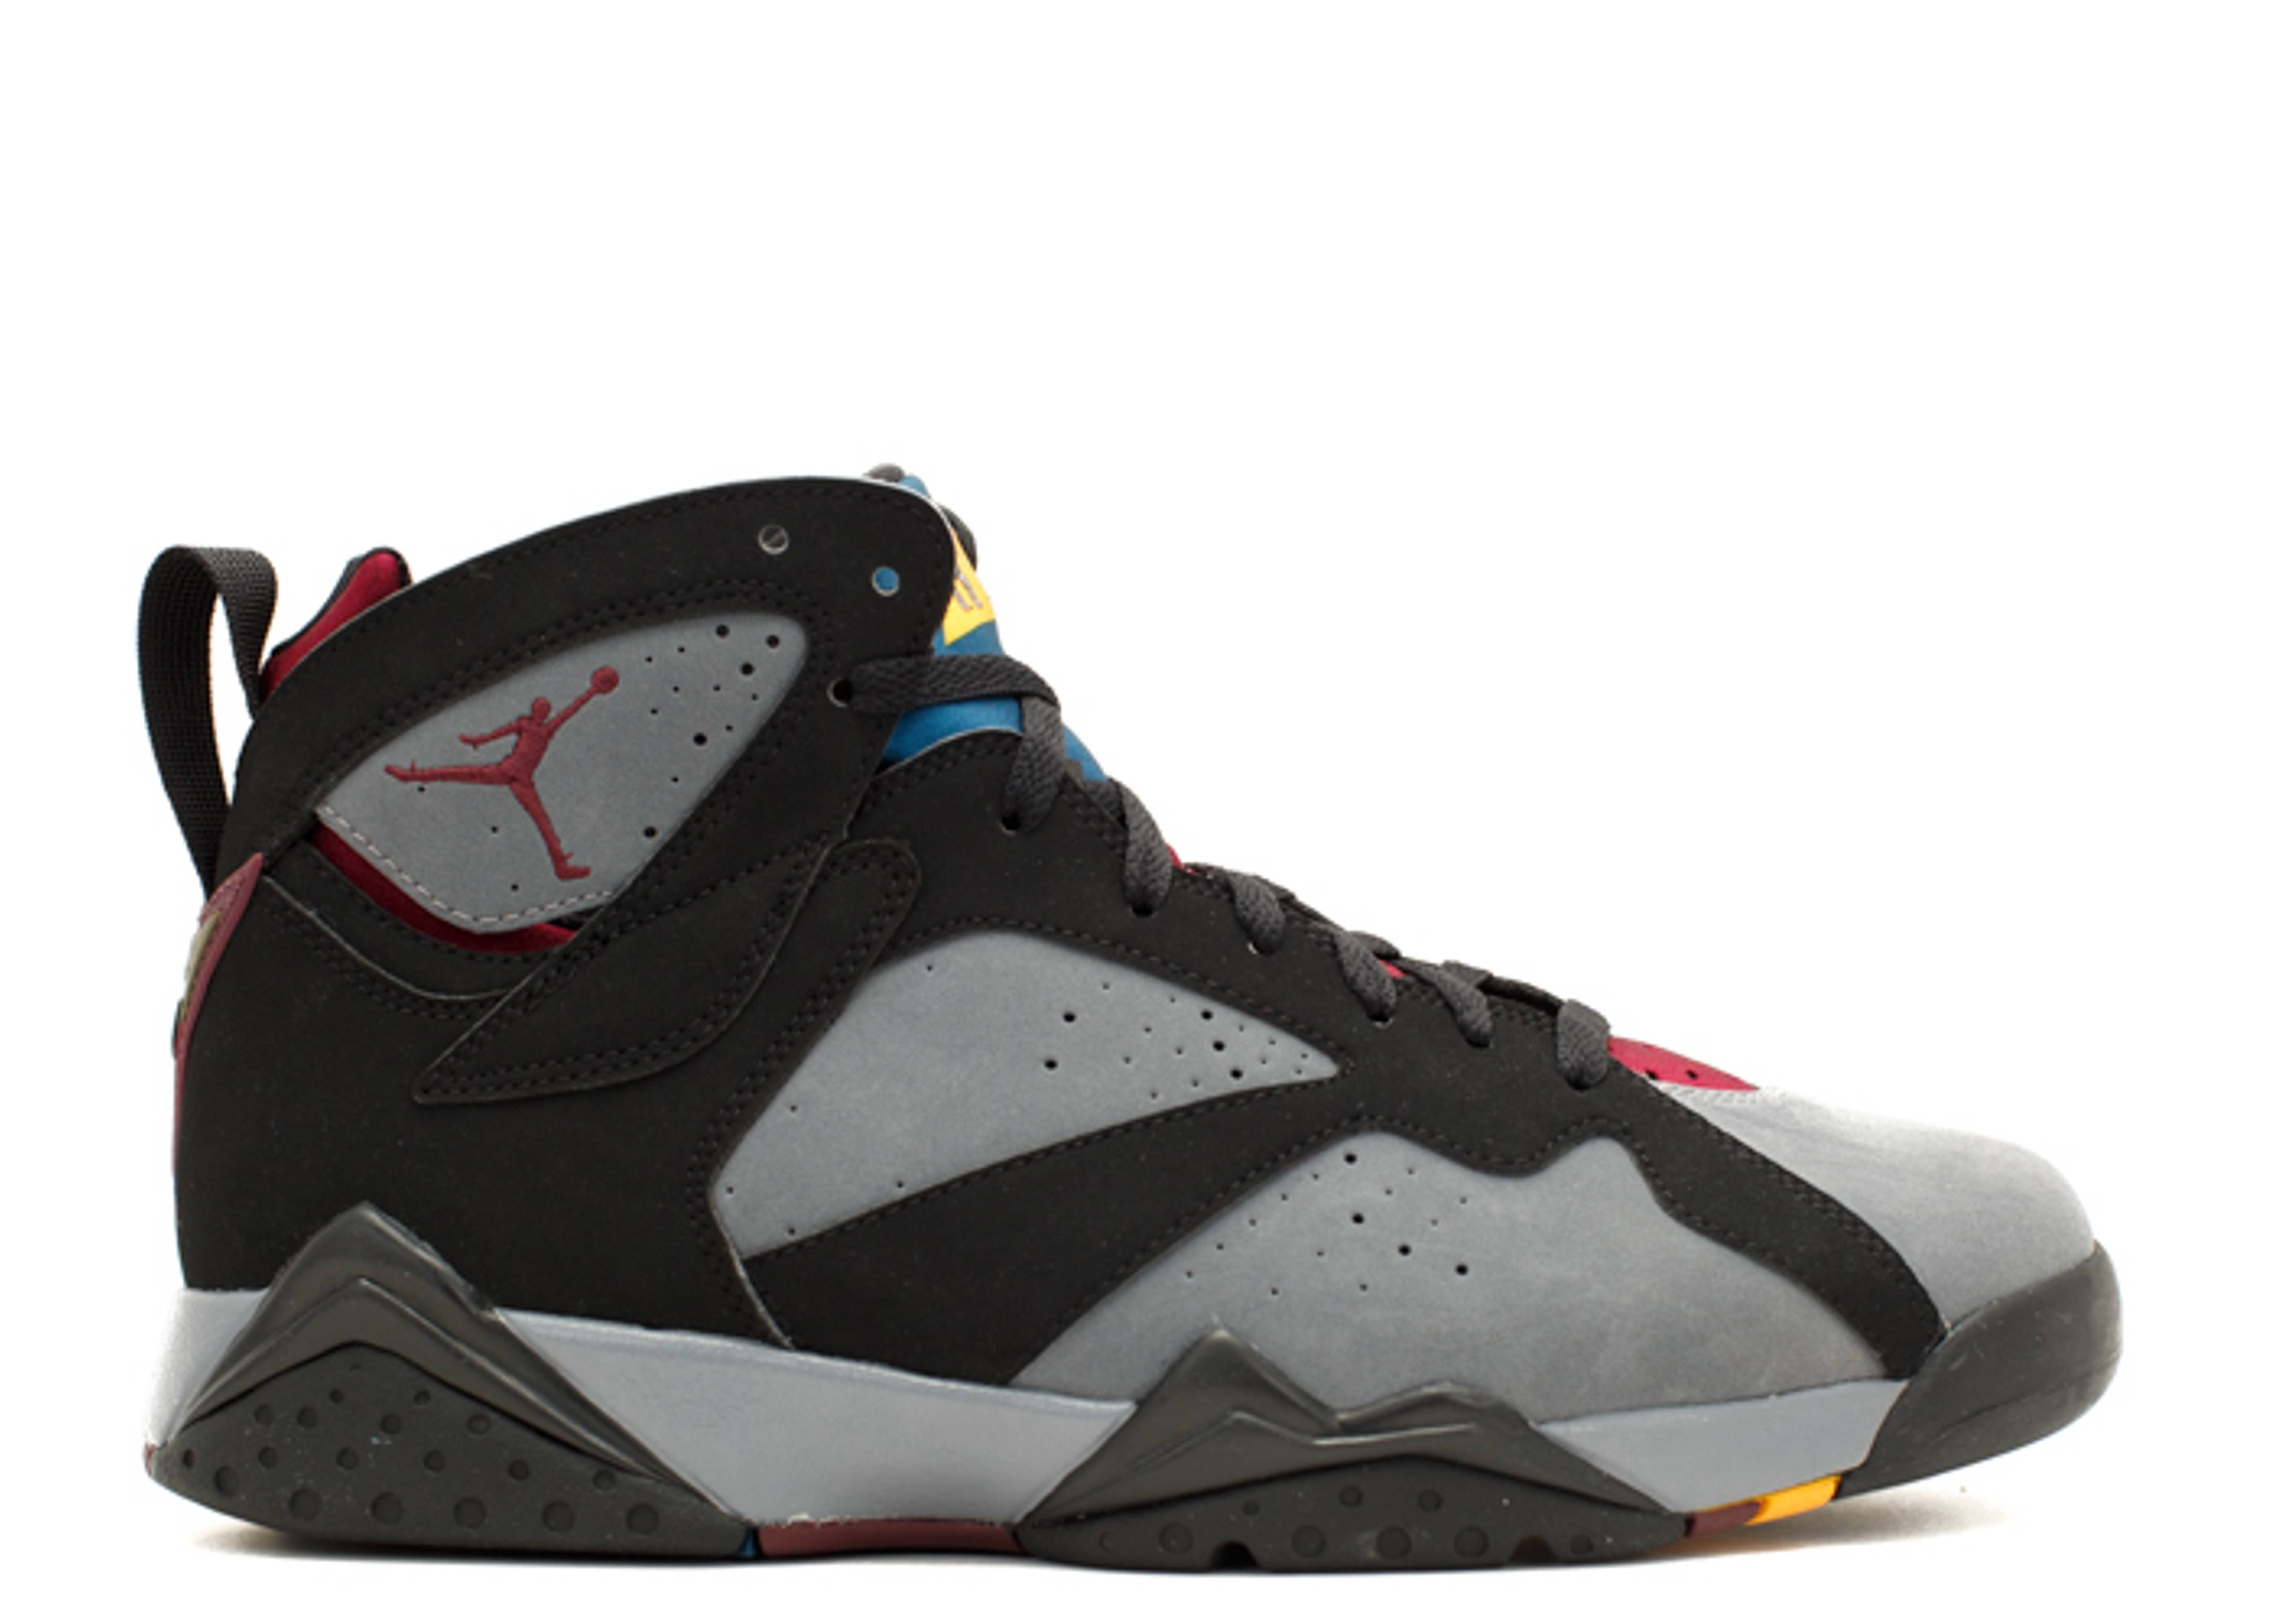 6f9c067aa63 Air Jordan 7 Retro